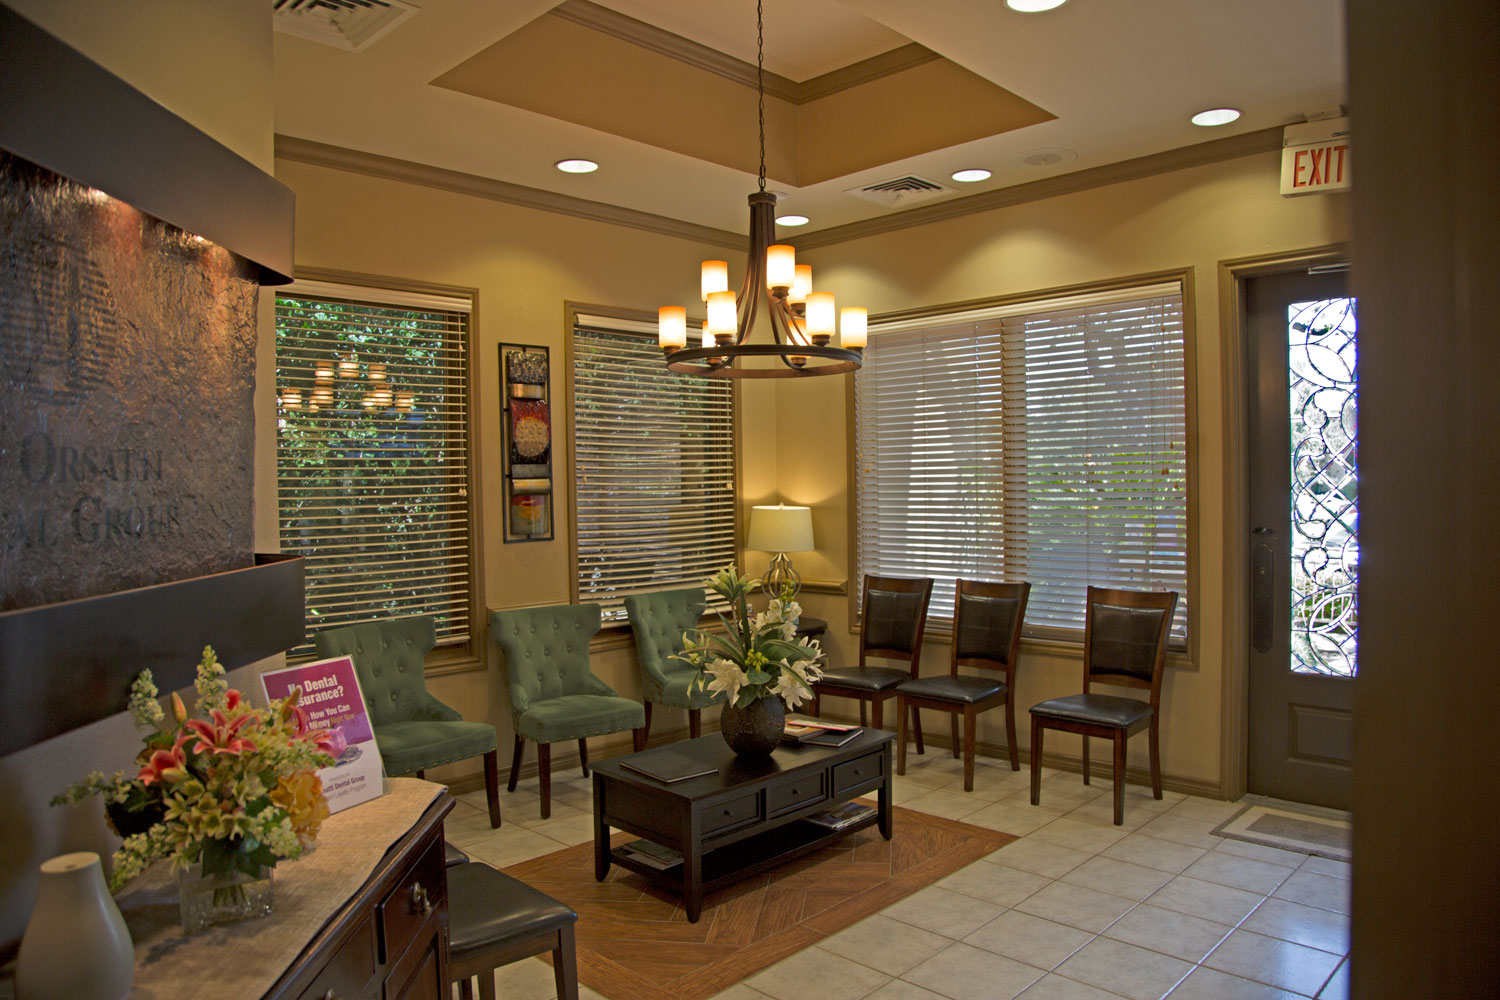 Comfortable Leather Chairs A Beverage And Snack Station Wide Screen TV Help Pass The Time Just Be Prepared To Not Wait Long Our Front Office Staff